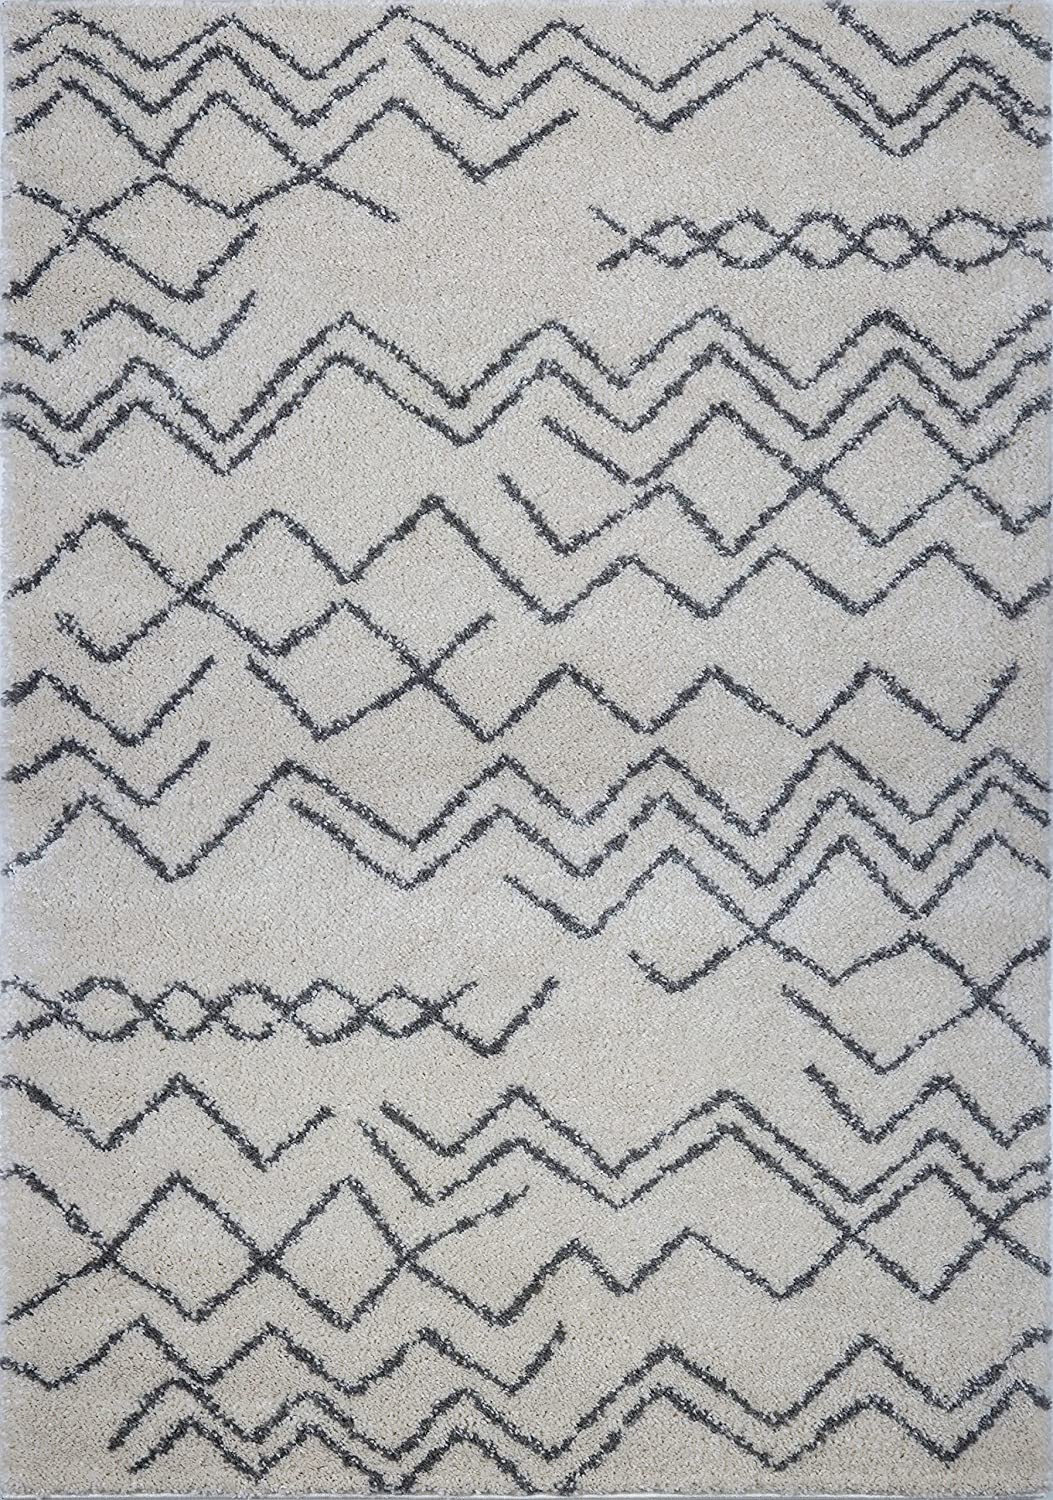 Ladole Rugs MOR12514 Sustainable Contemporary Trellis Area Rug 240cm x 320cm Grey//Ivory 710 x 105